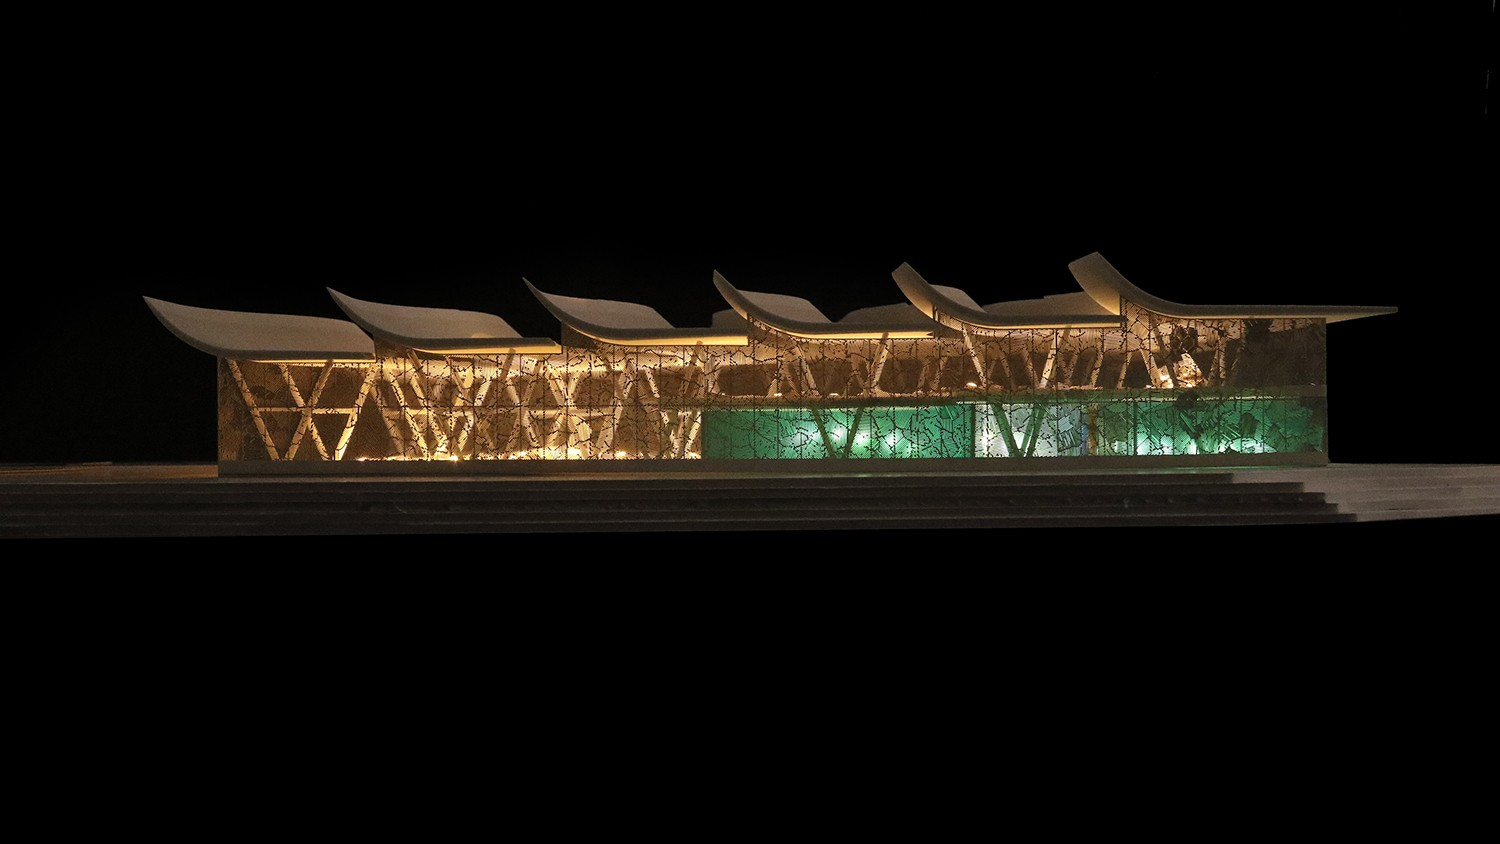 https://s3.us-east-2.amazonaws.com/steven-holl/uploads/projects/project-images/StevenHollArchitects_Malawi_Model_Night_2_WH.jpg